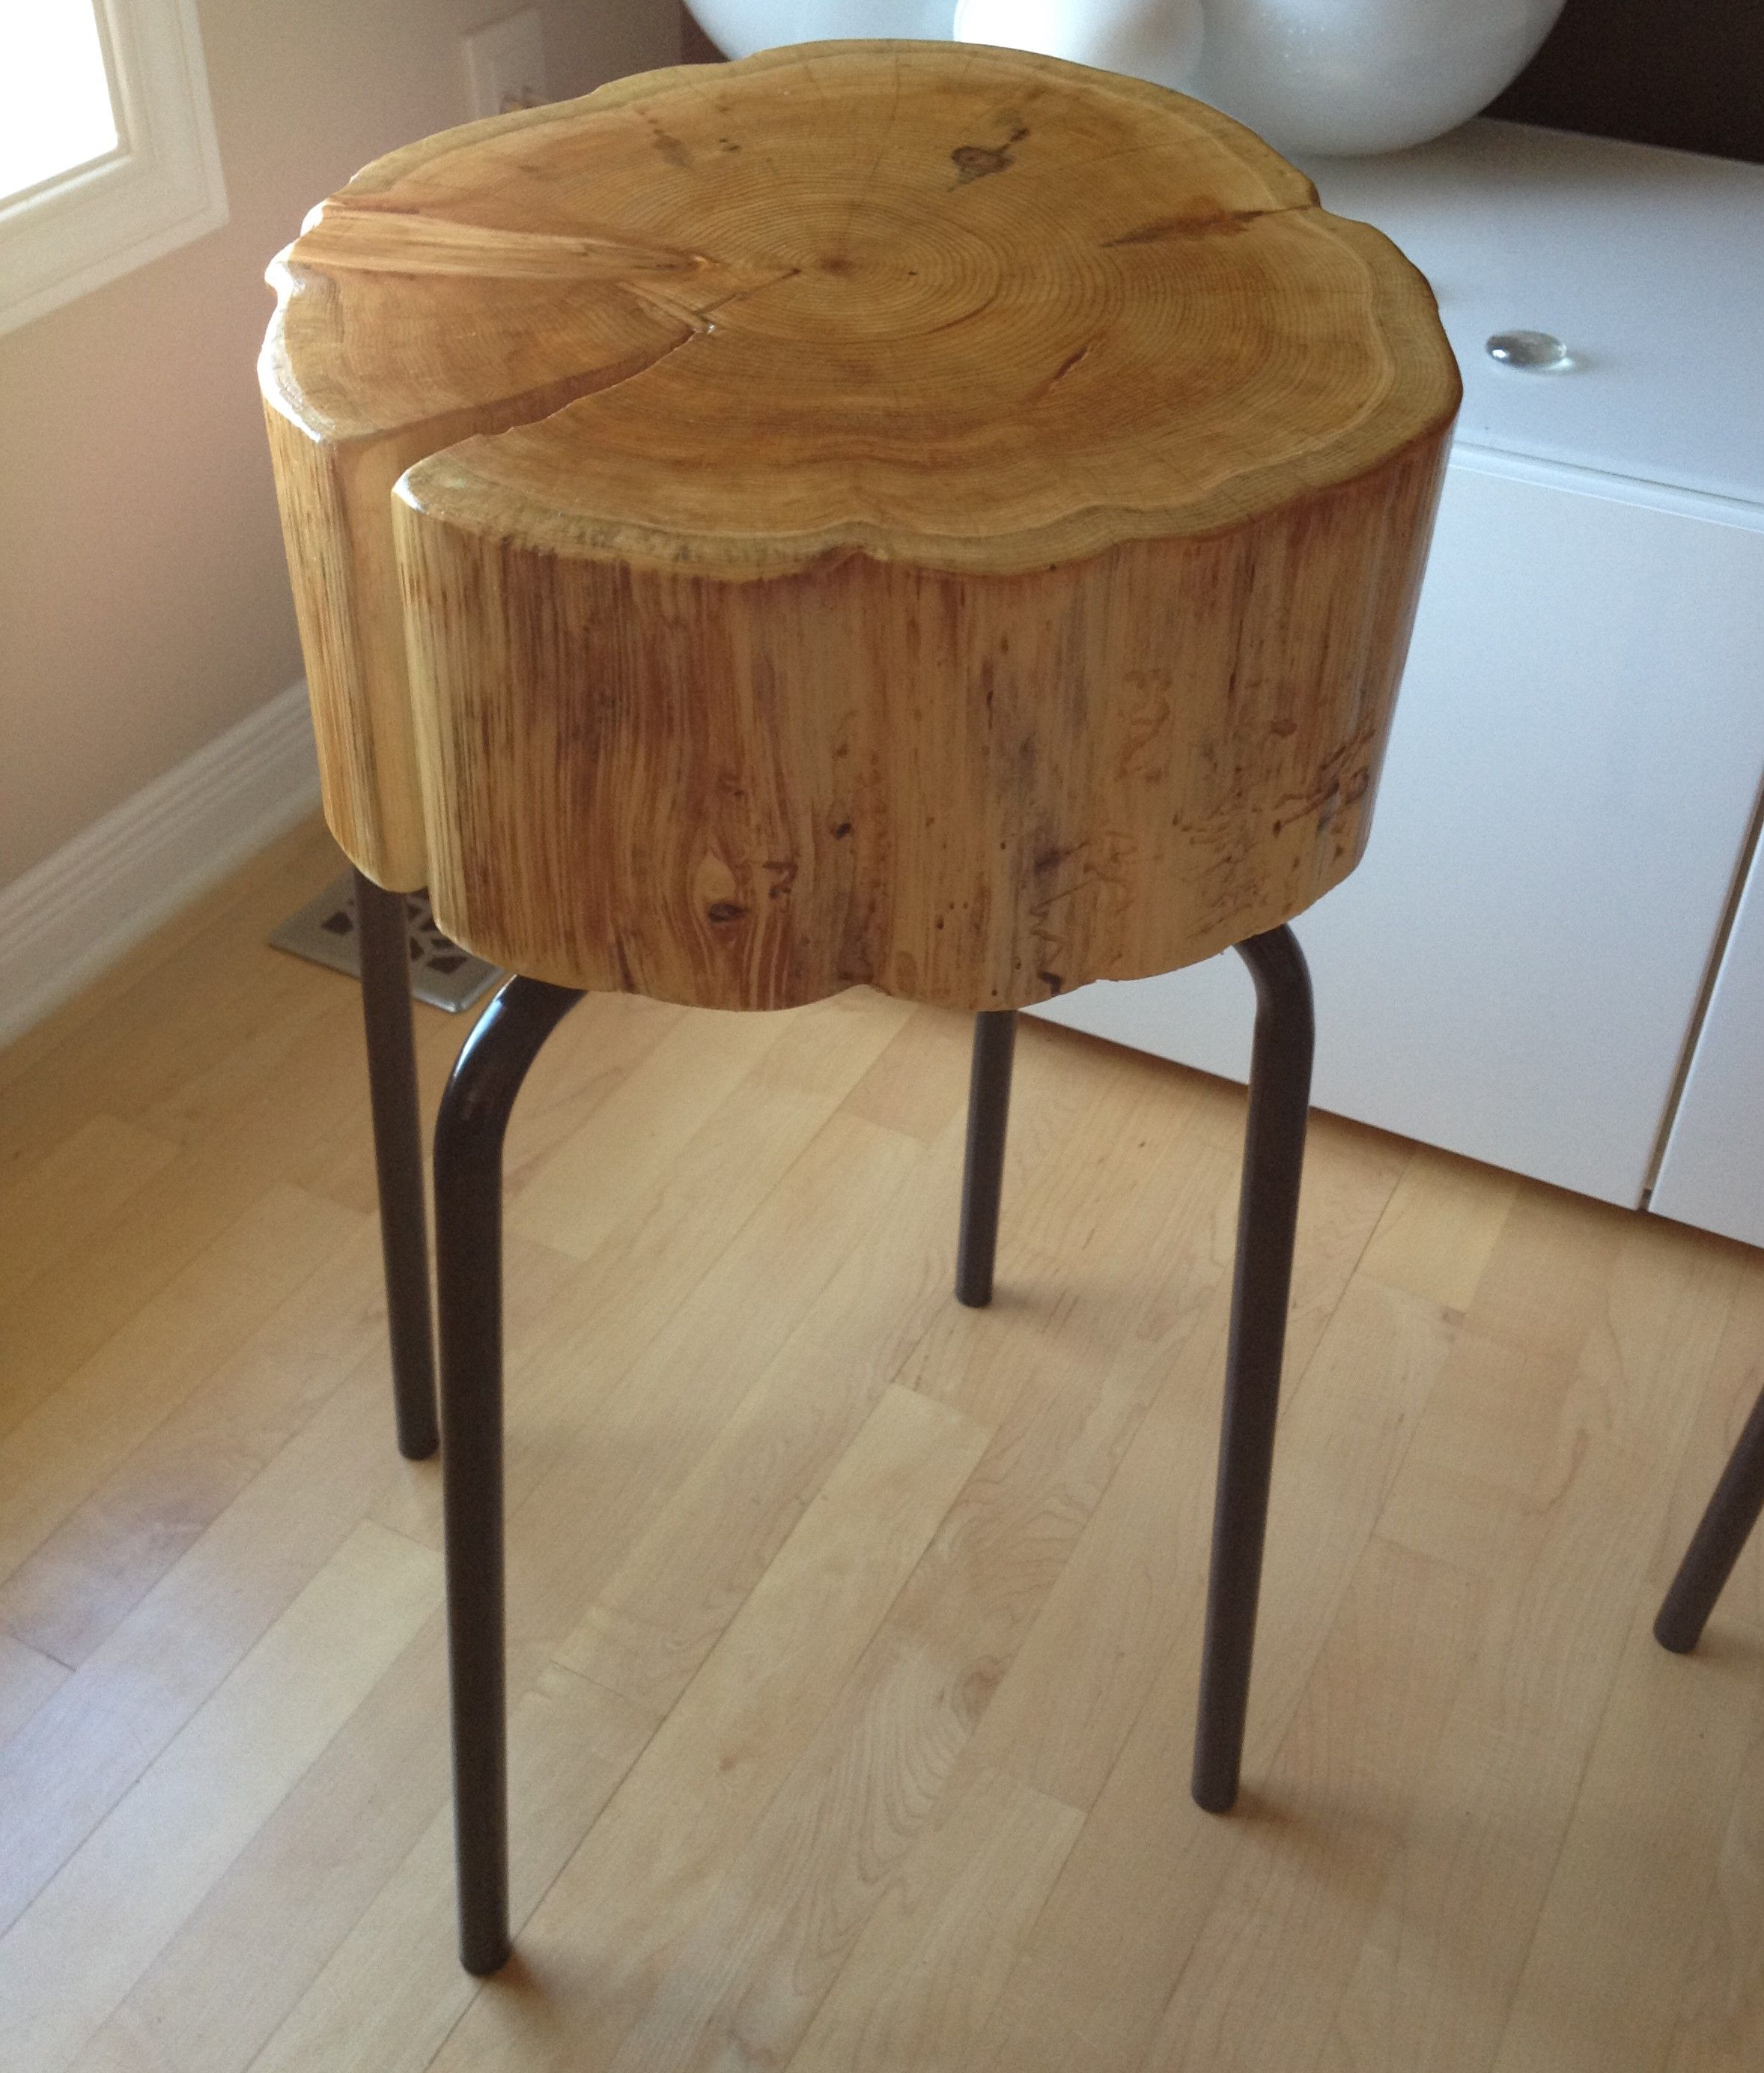 sliced stump side table/metal legs live edge table with hairpin